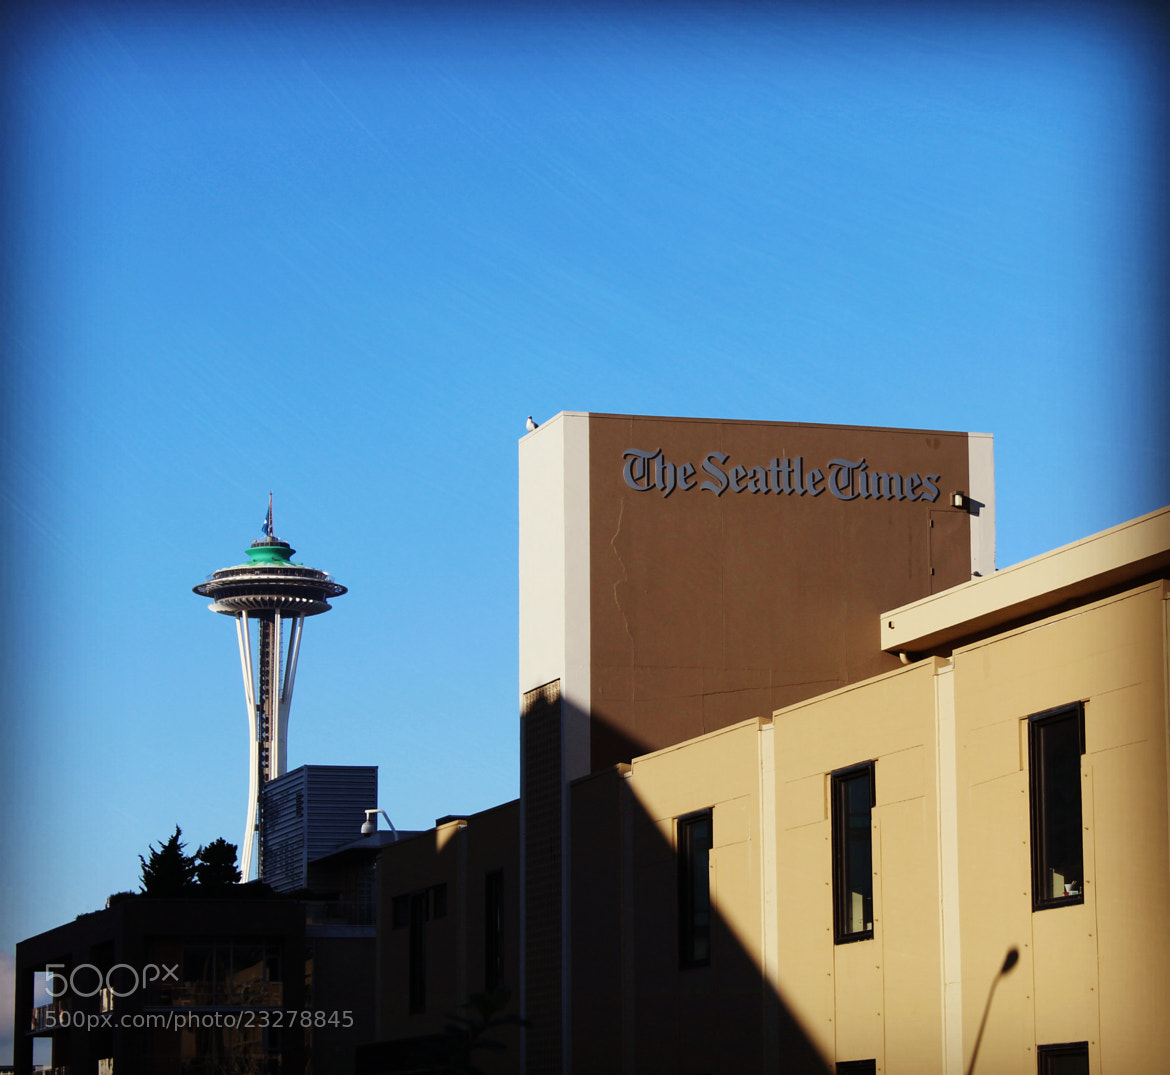 Photograph The Seattle Times by Cooler  Cot on 500px